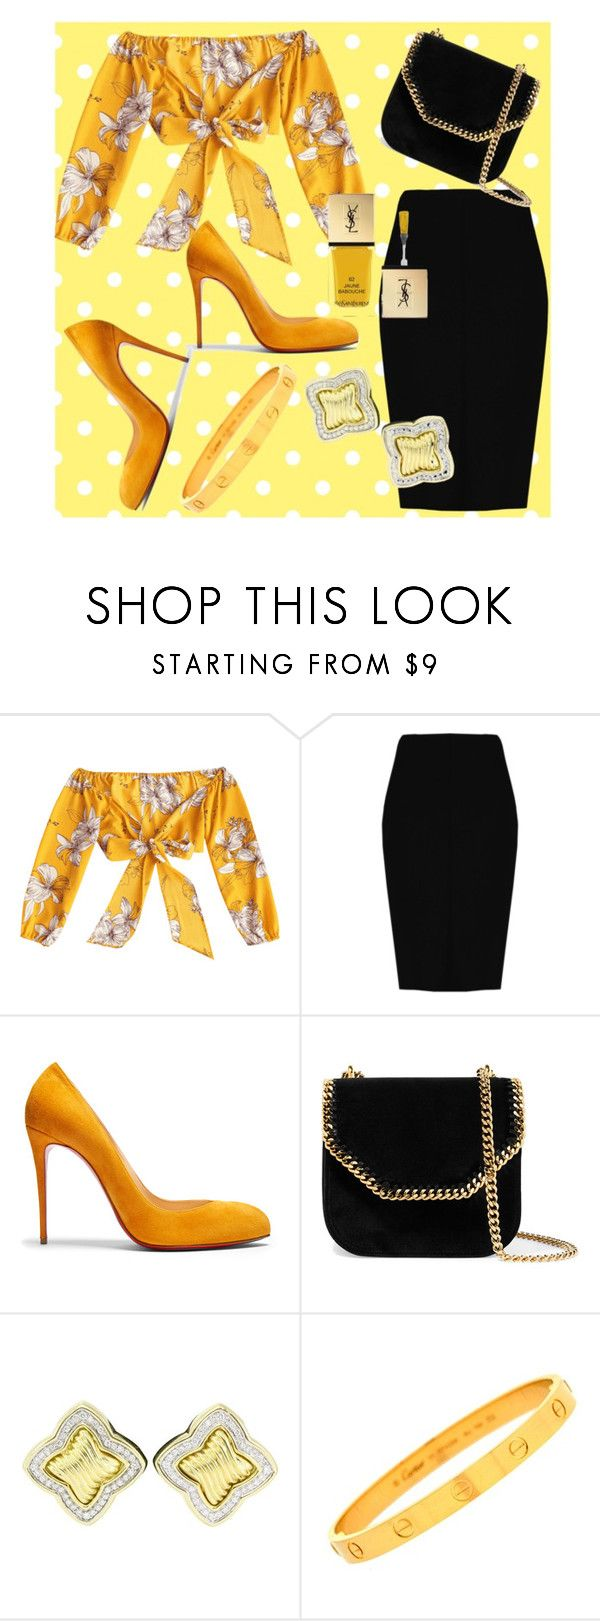 """Yellow Fever"" by nadsshoes ❤ liked on Polyvore featuring Boohoo, Christian Louboutin, STELLA McCARTNEY, David Yurman, Cartier and Yves Saint Laurent"